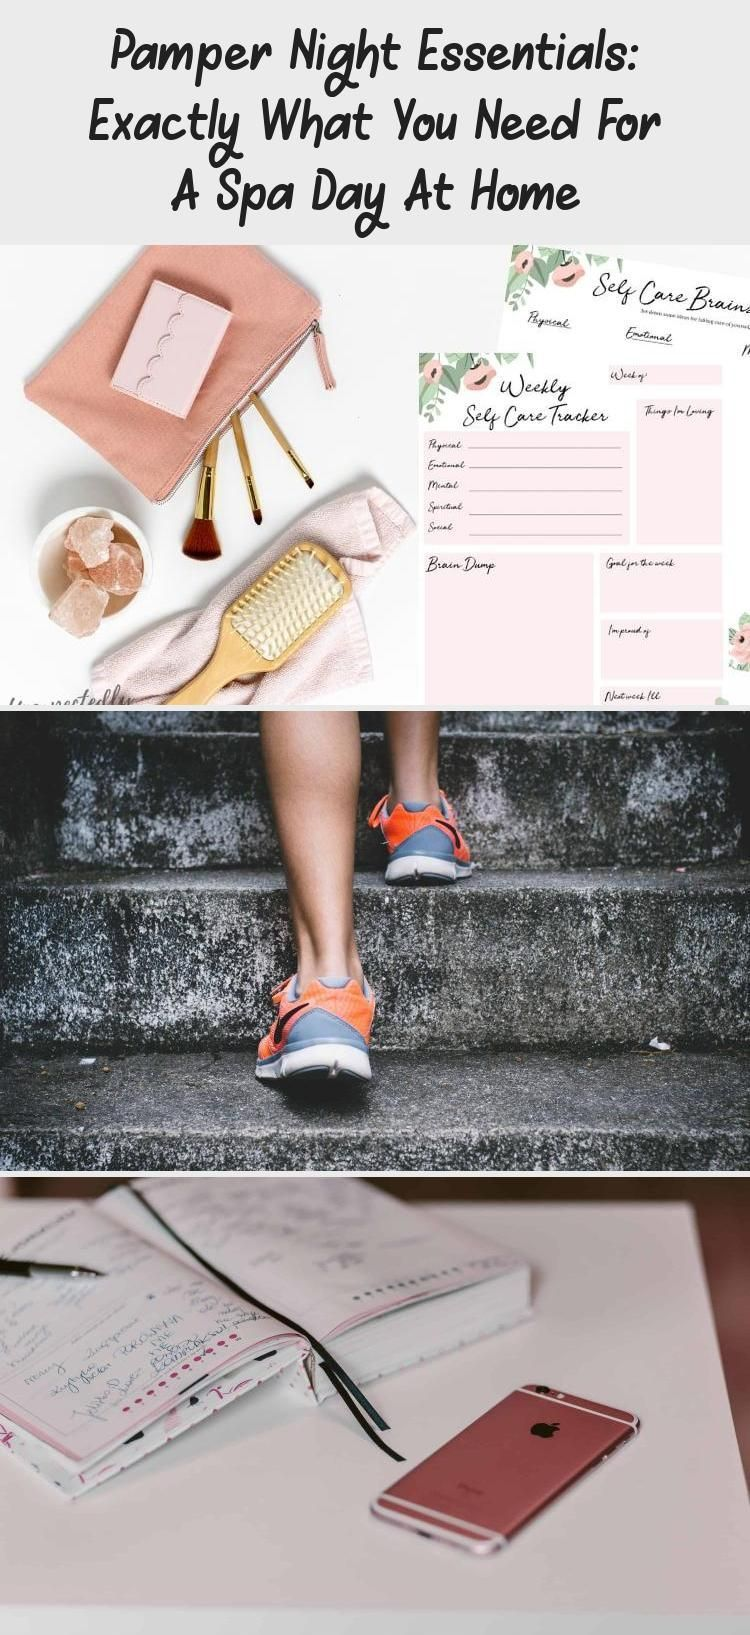 Pamper Night Essentials Exactly What You Need For A Spa Day At Home  Nailday Best Picture For Beauty Routine for busy moms For Your Taste You are looking for something an...